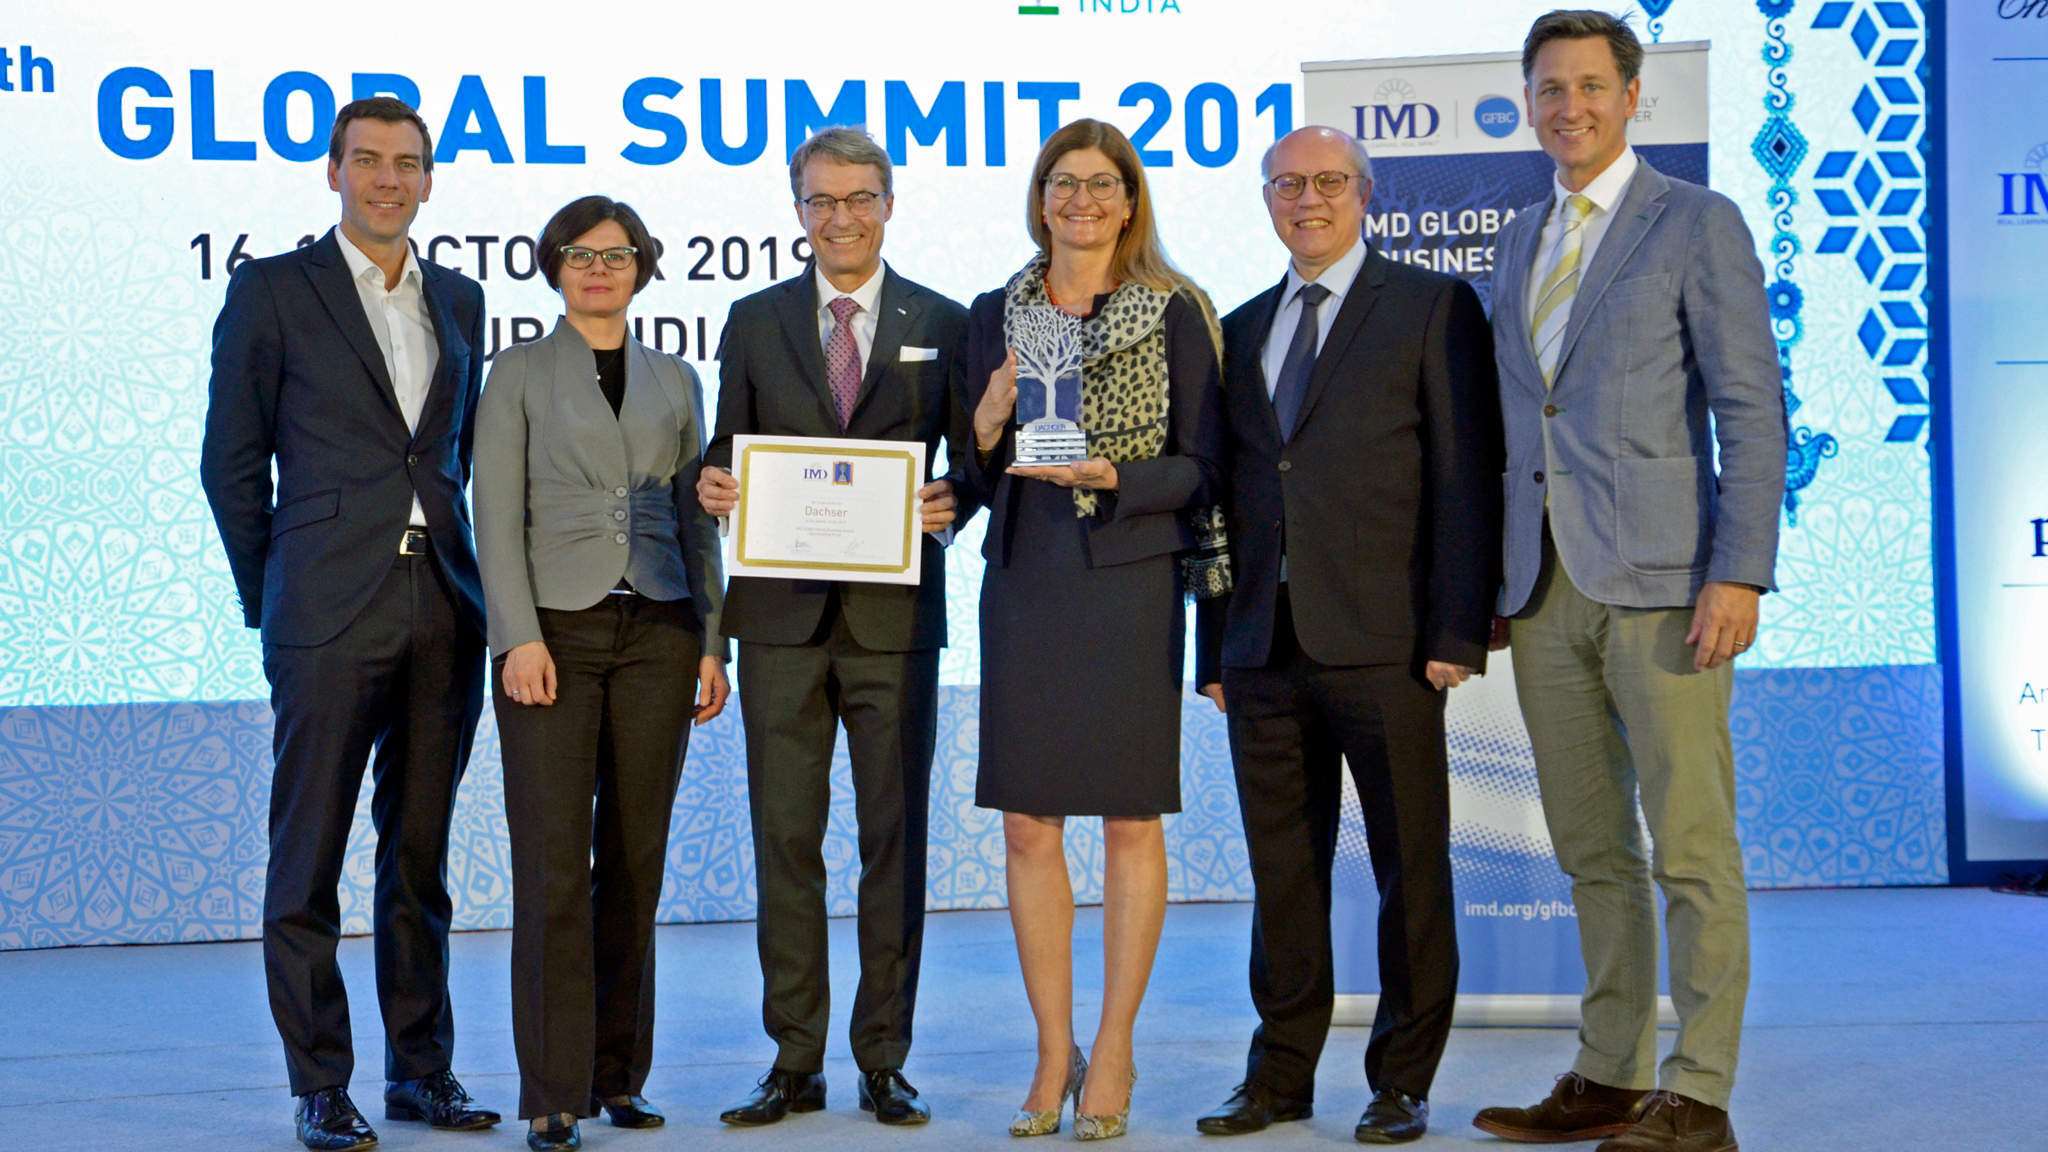 Prof. Peter Vogel, Director of IMD Global Family Business Center; Marta Widz, IMD Research Fellow; Bernhard Simon, CEO DACHSER SE; Birgit Kastner-Simon, Corporate Director Corporate Marketing, DACHSER SE; Prof. Benoit Leleux, IMD Global Family Business Award Director; Matthew Crudgington, Associate Director, IMD Global Family Business Center